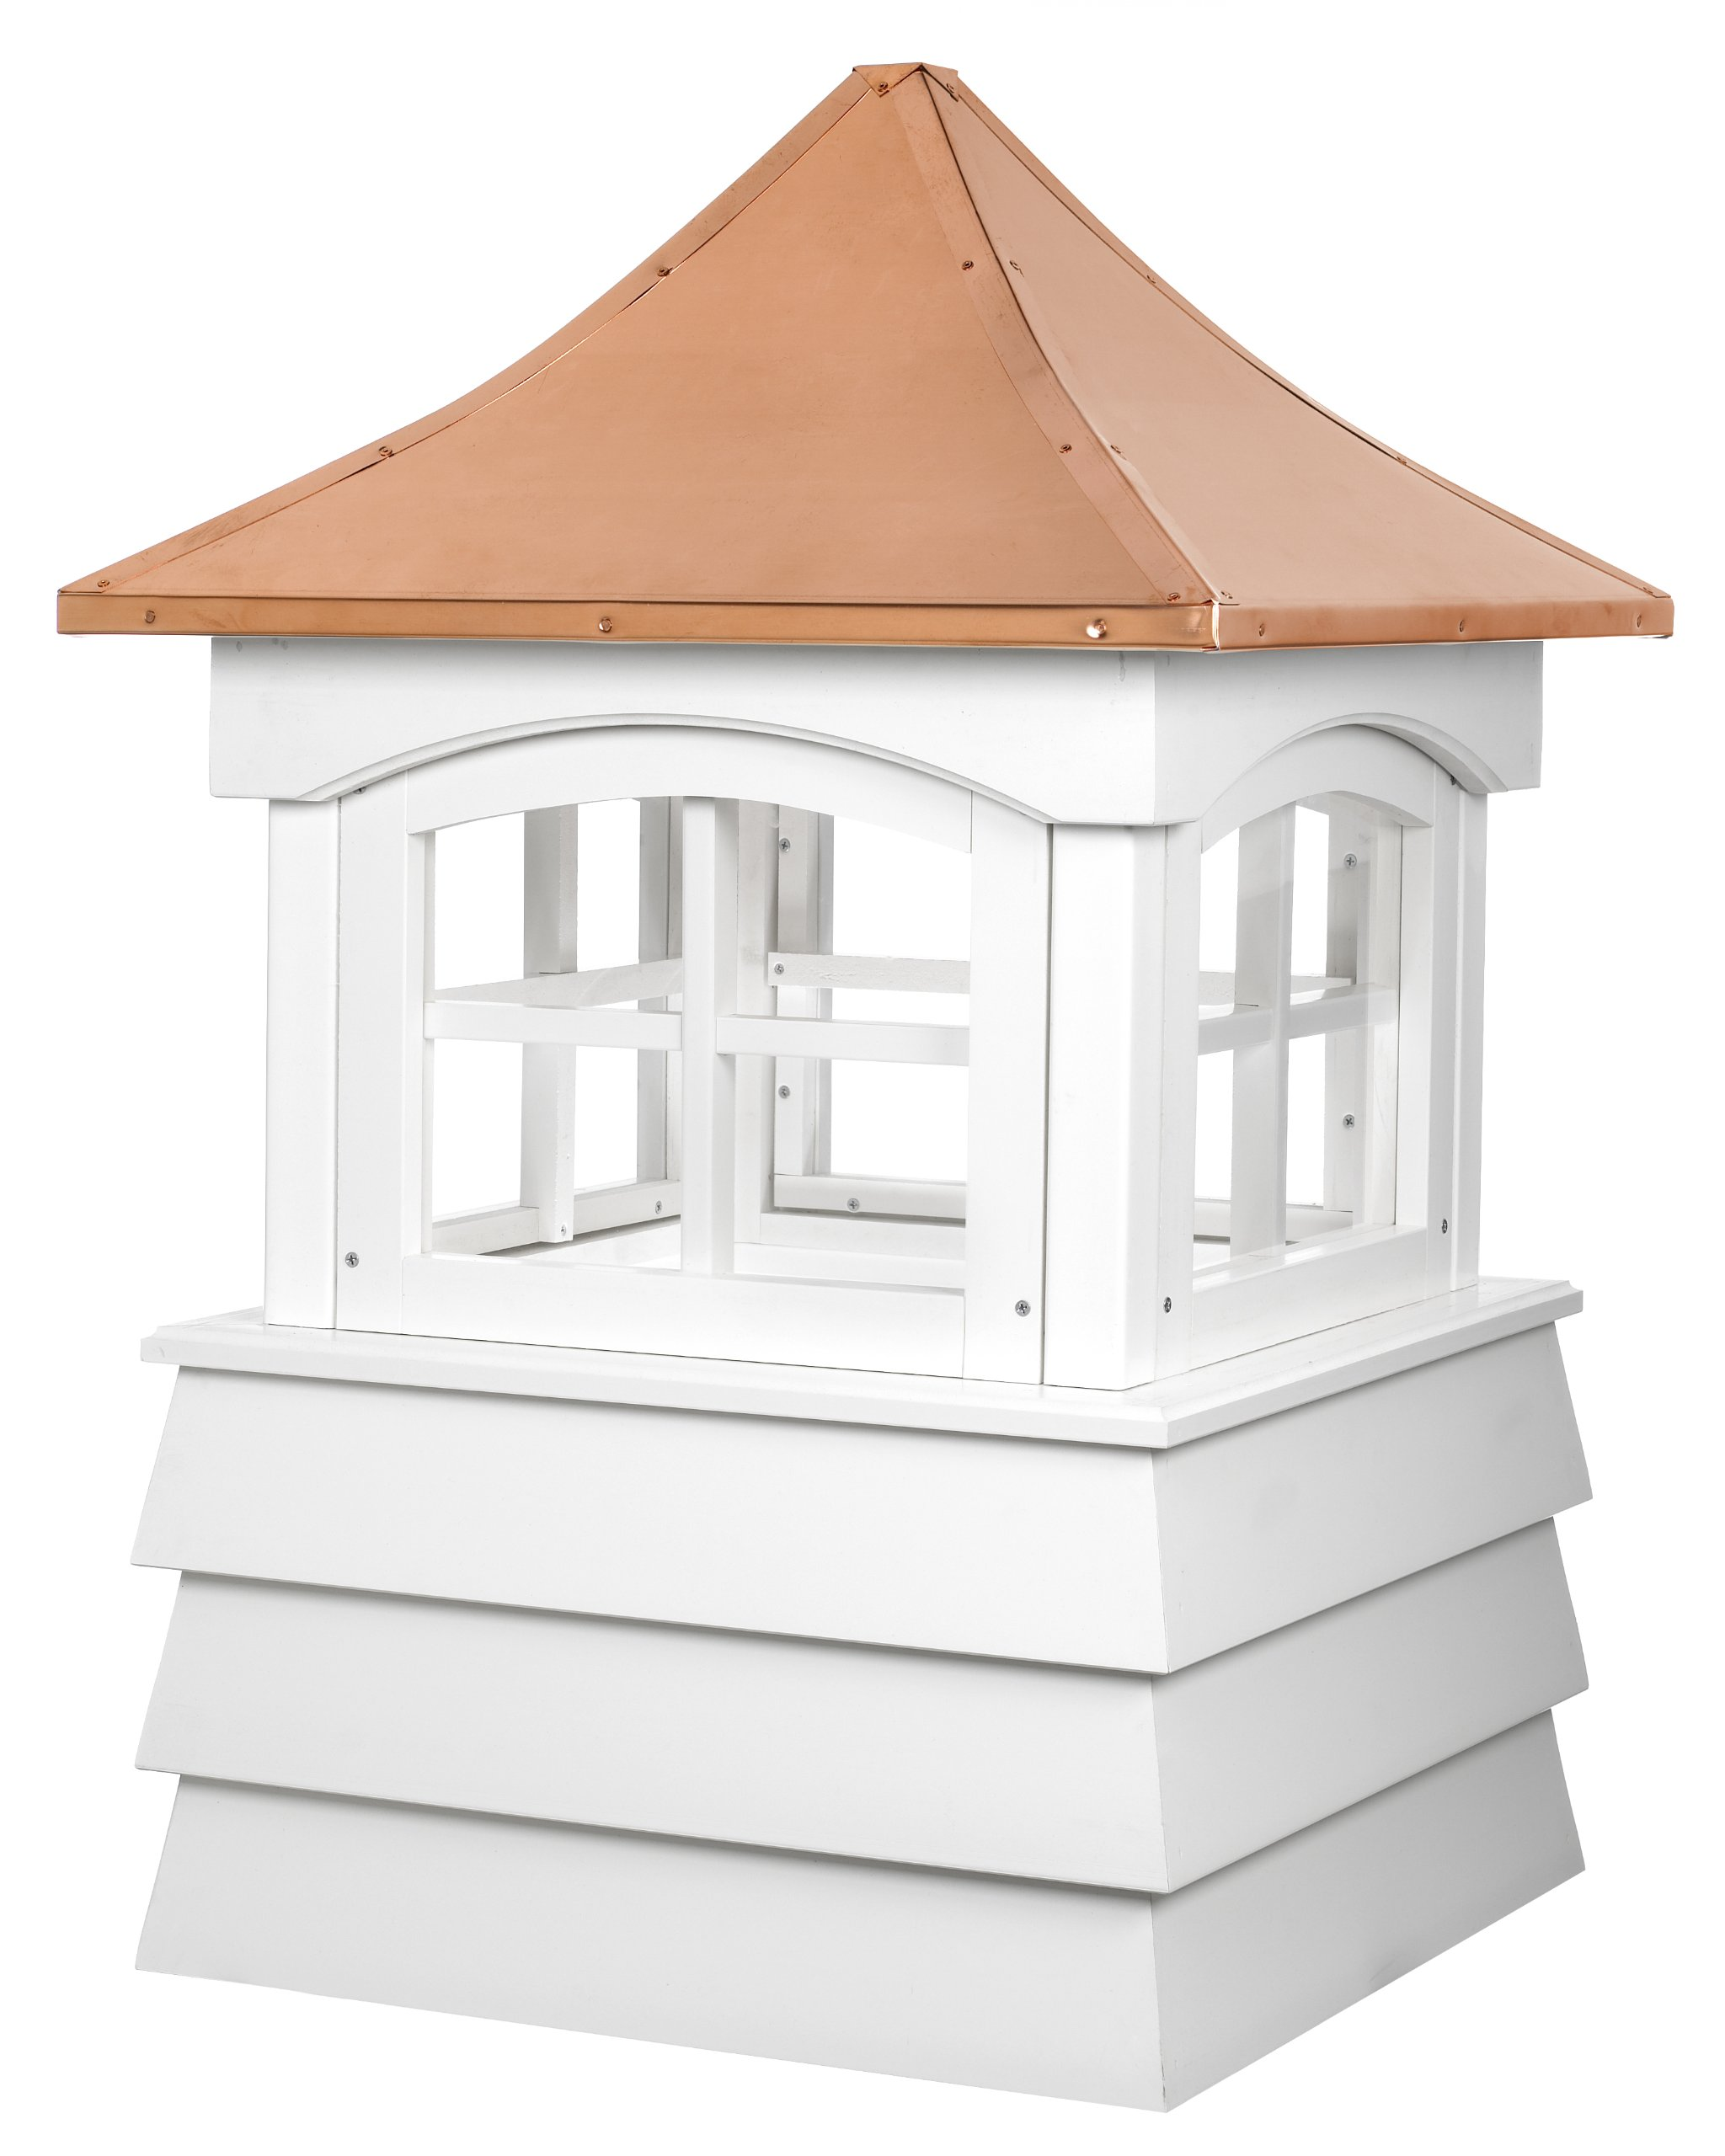 Good Directions Guilford Vinyl Shiplap Cupola with Copper Roof 36'' x 54''